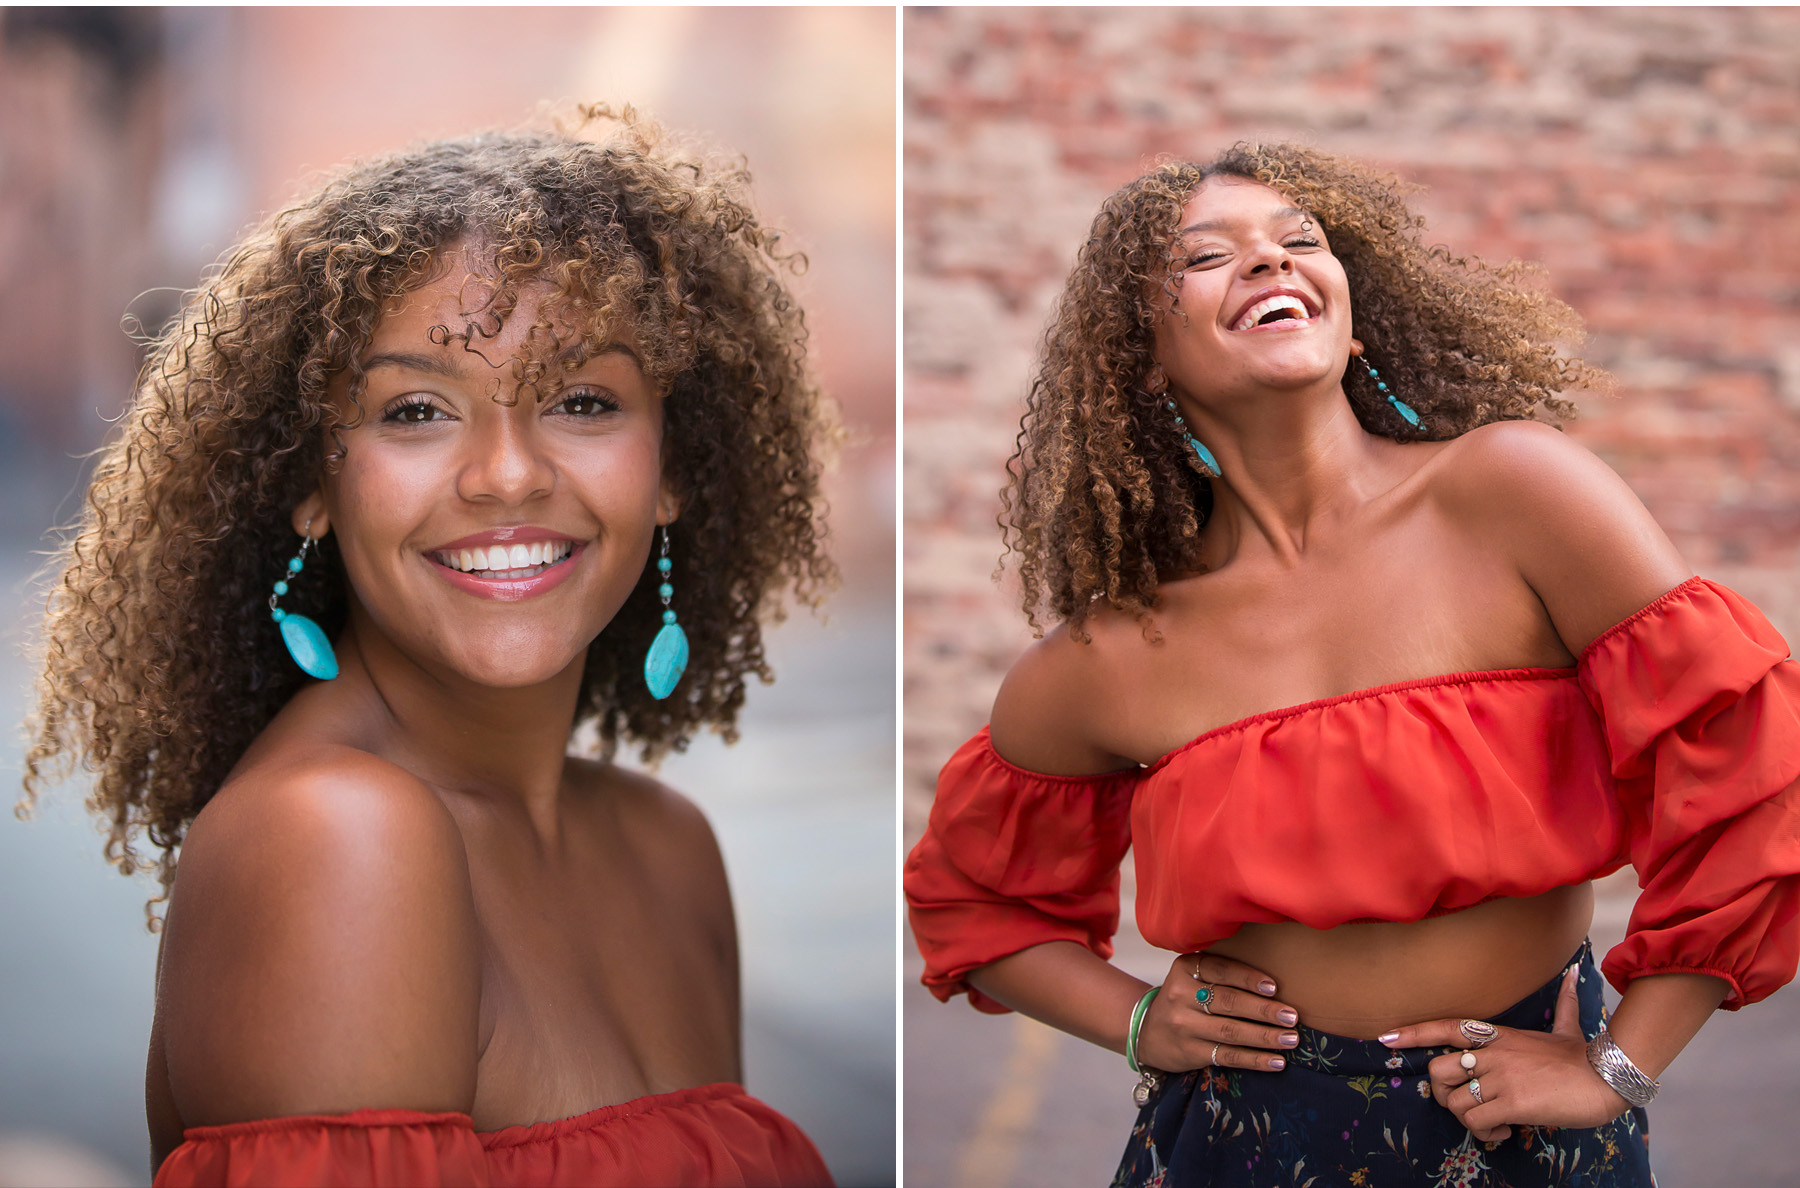 Strong, beautiful black woman rocks her urban high school senior pictures with Denver photographer, Jennifer Koskinen, Merritt Portrait Studio